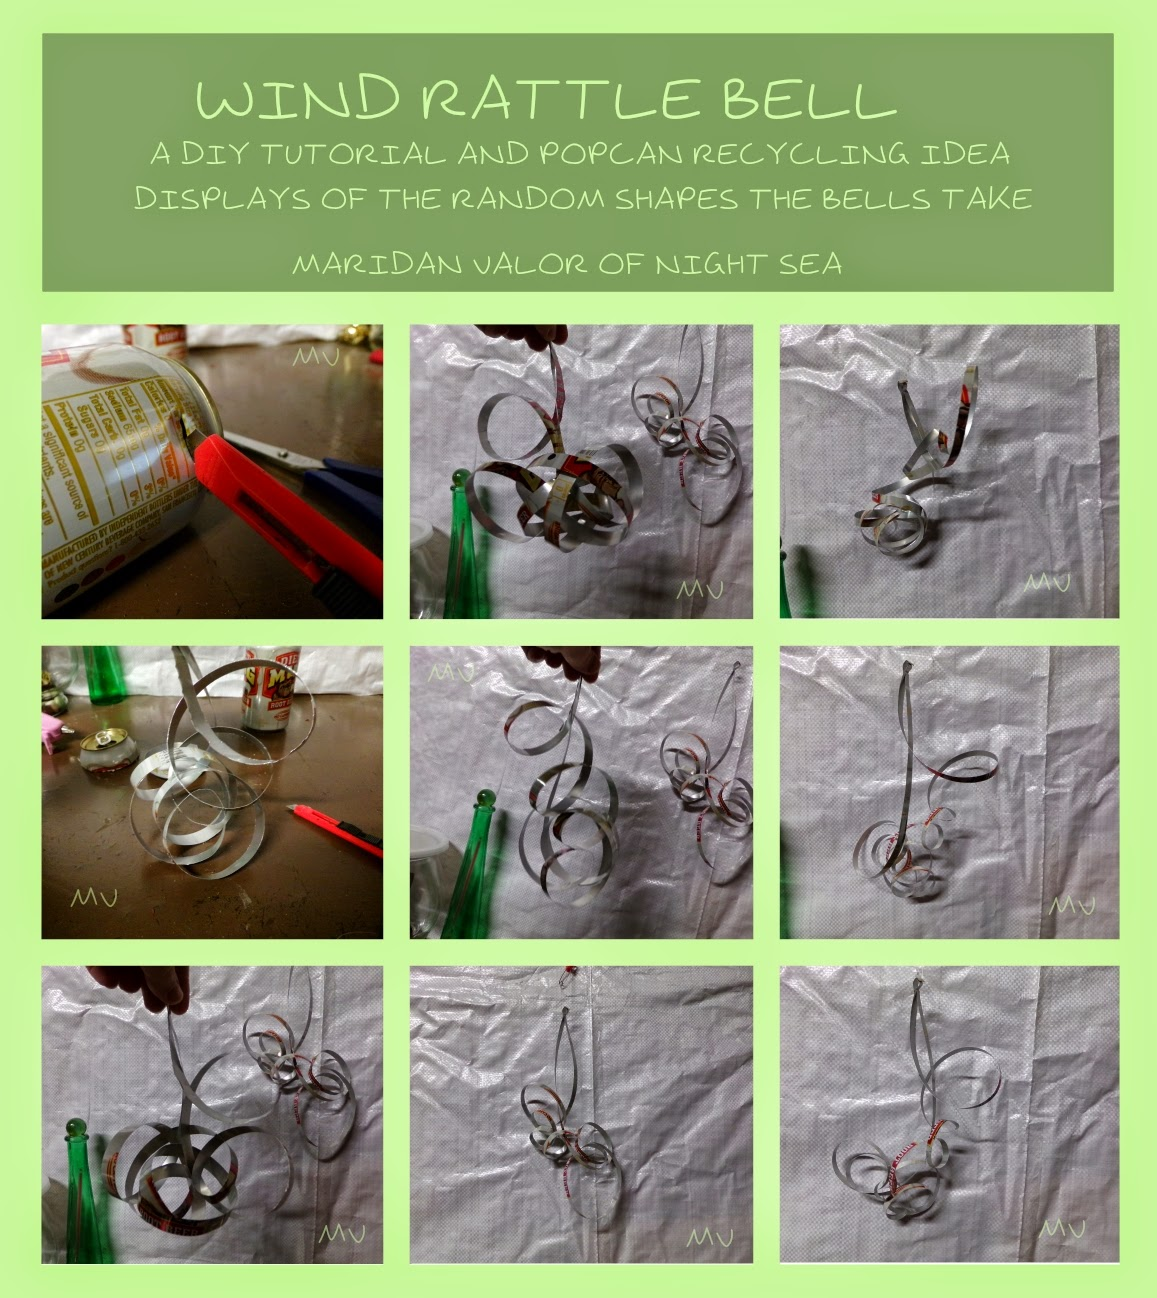 Wind Rattle Bell DIY recycled craft. Get full instructions on http://nightsea90.blogspot.com/